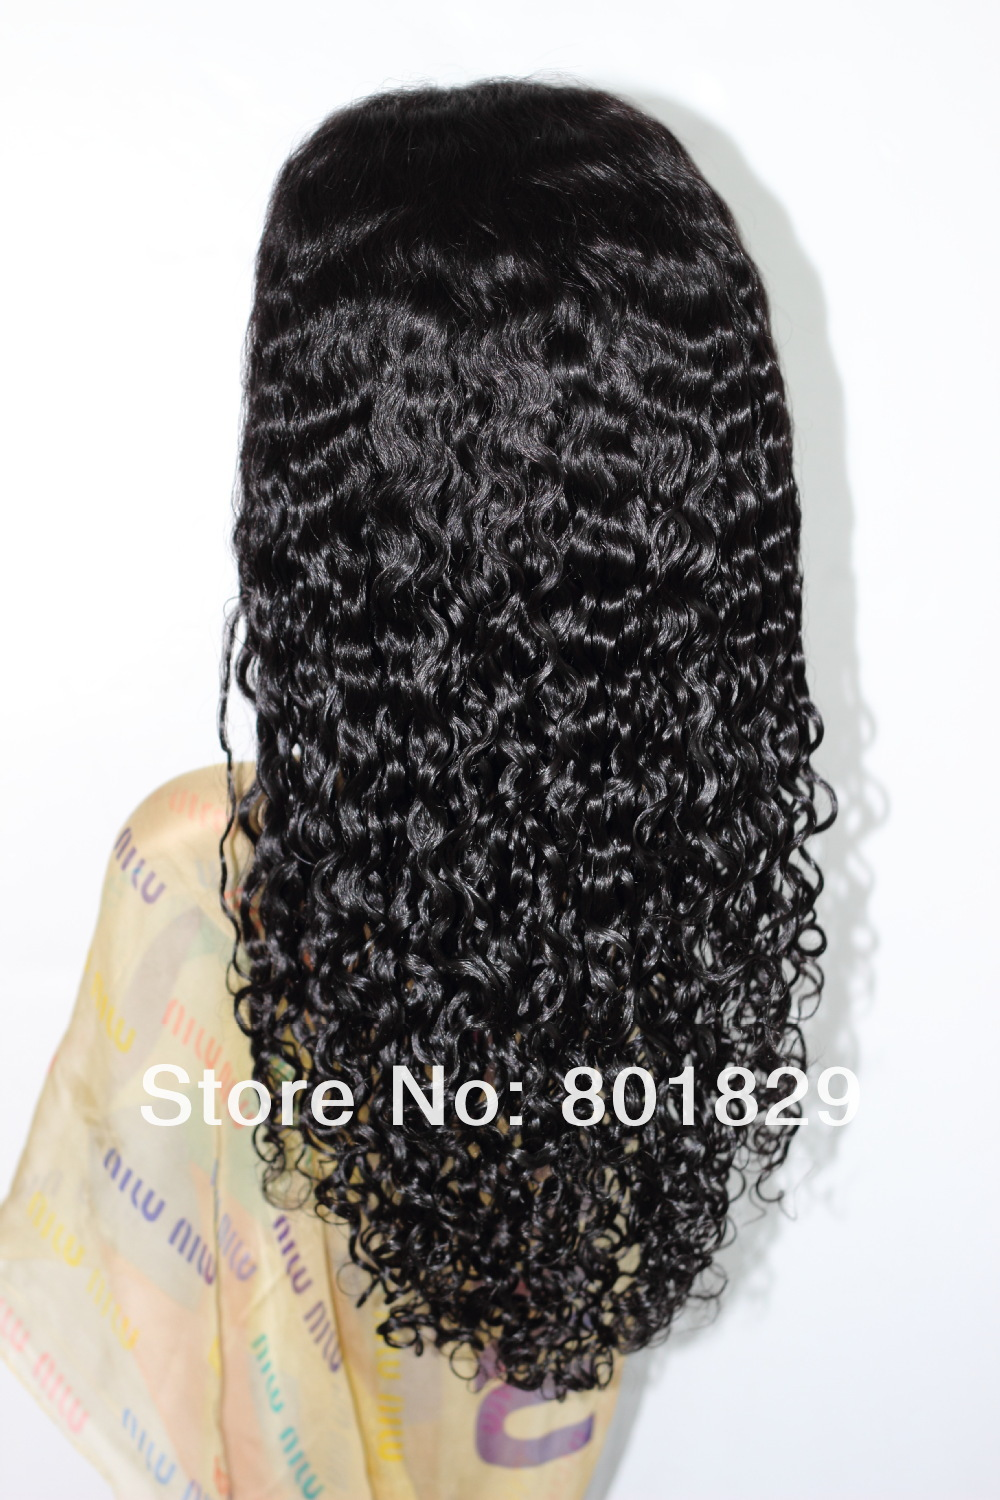 100% Chinese Virgin Hair Full Lace Wig, 1b# Color, water wave texture in stock